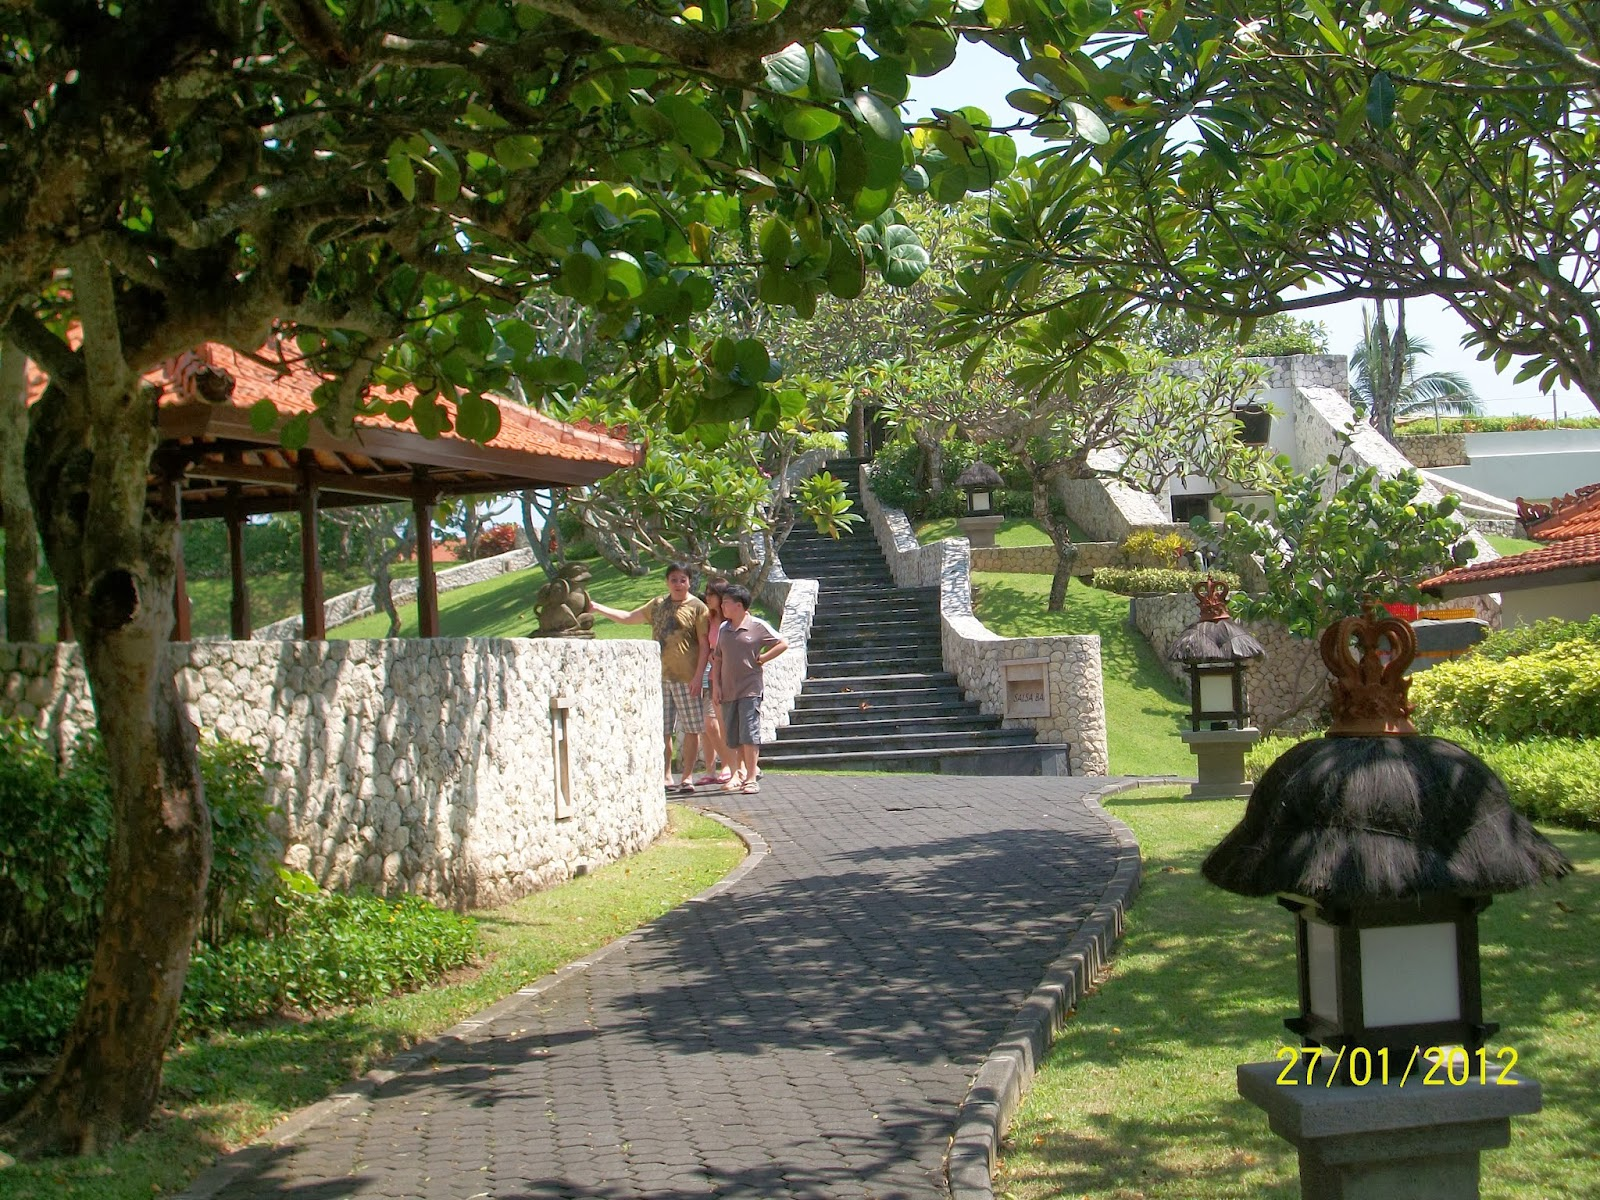 The-Island-of-Bali